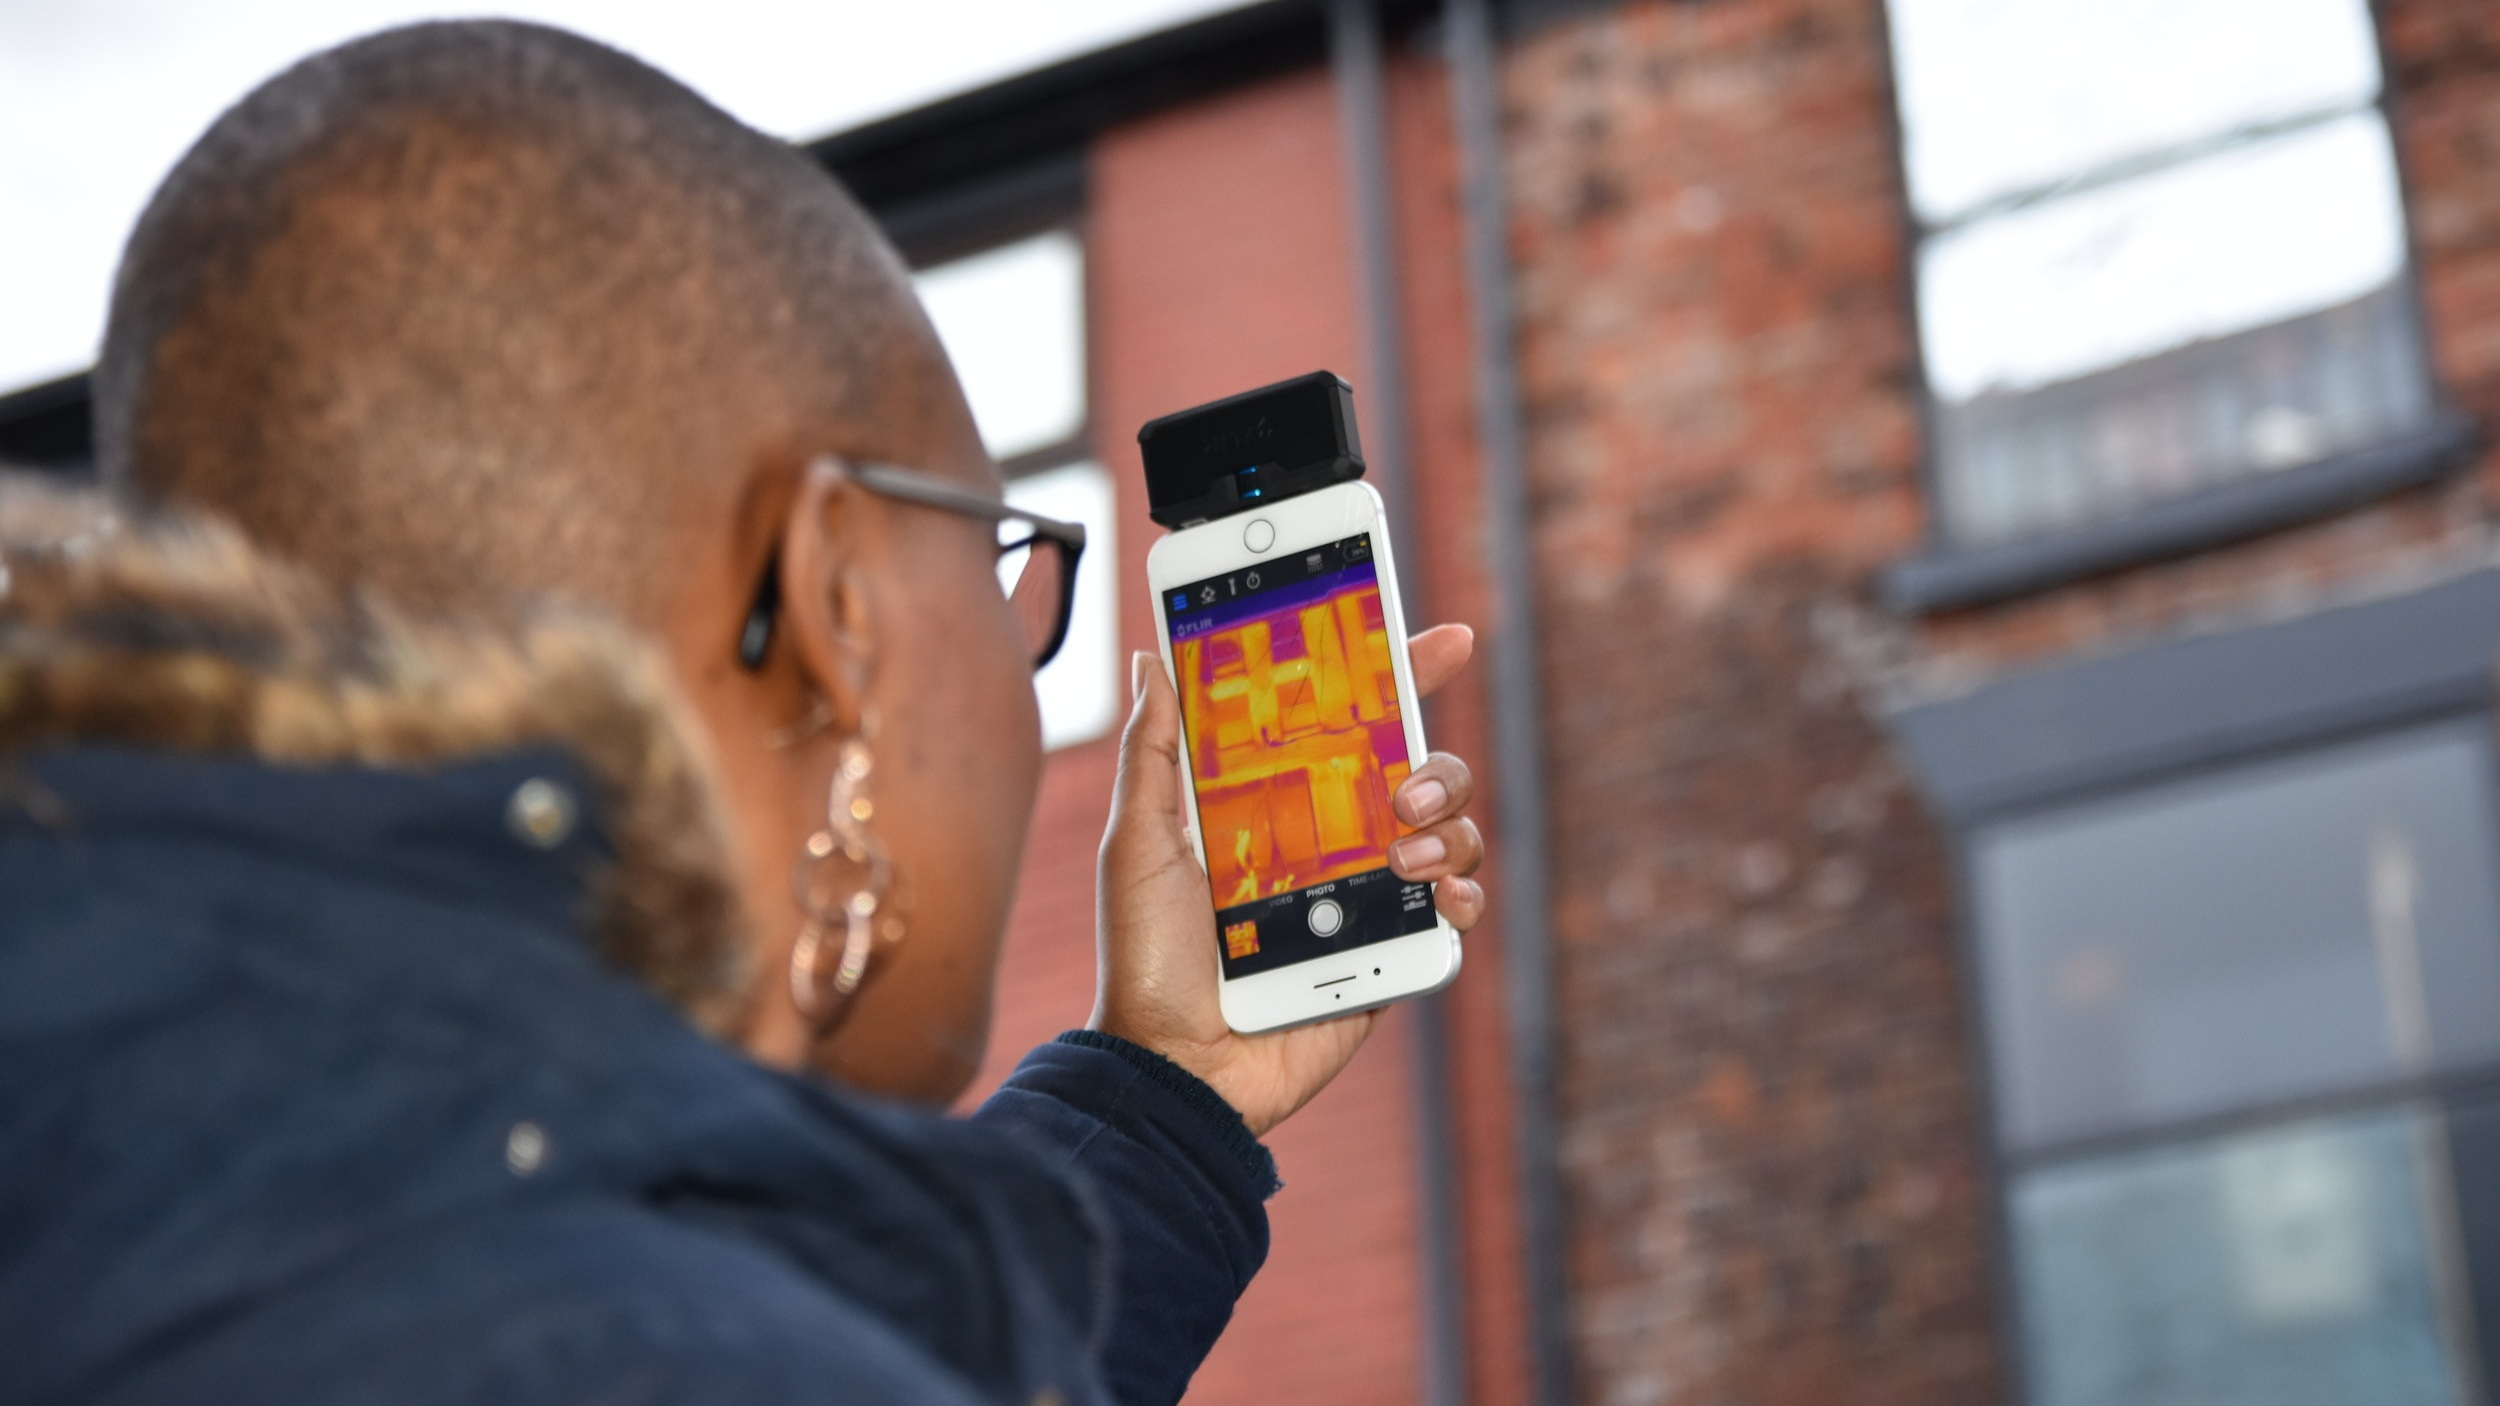 woman using heat camera attached to phone. Link: Clean heat